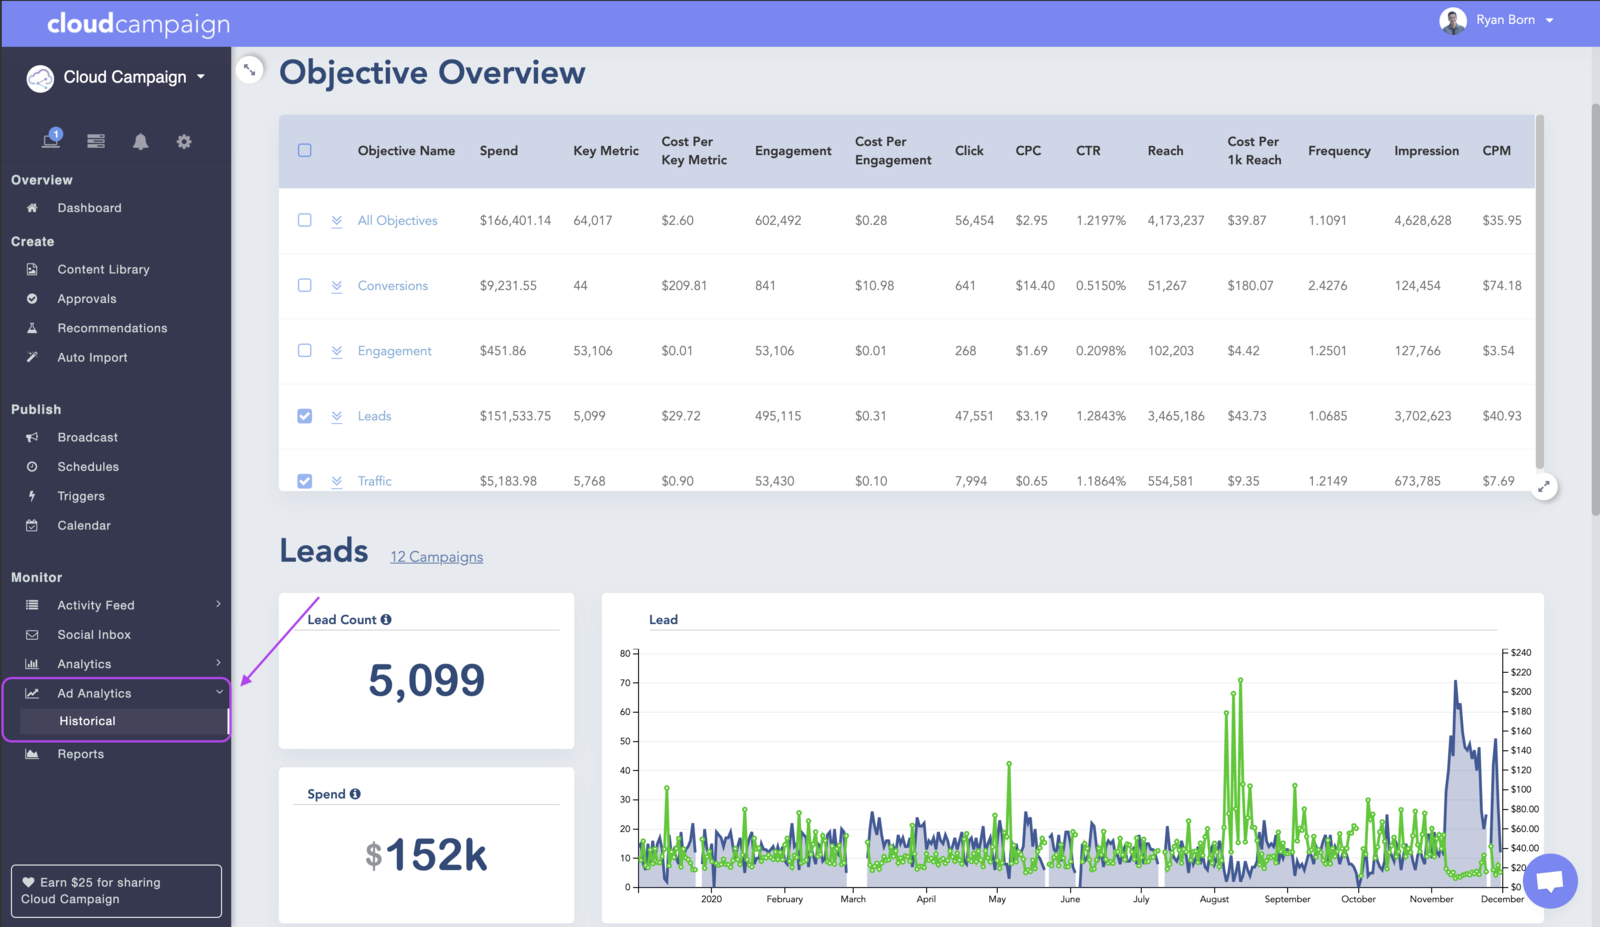 Cloud Campaign Facebook Ad Analytics